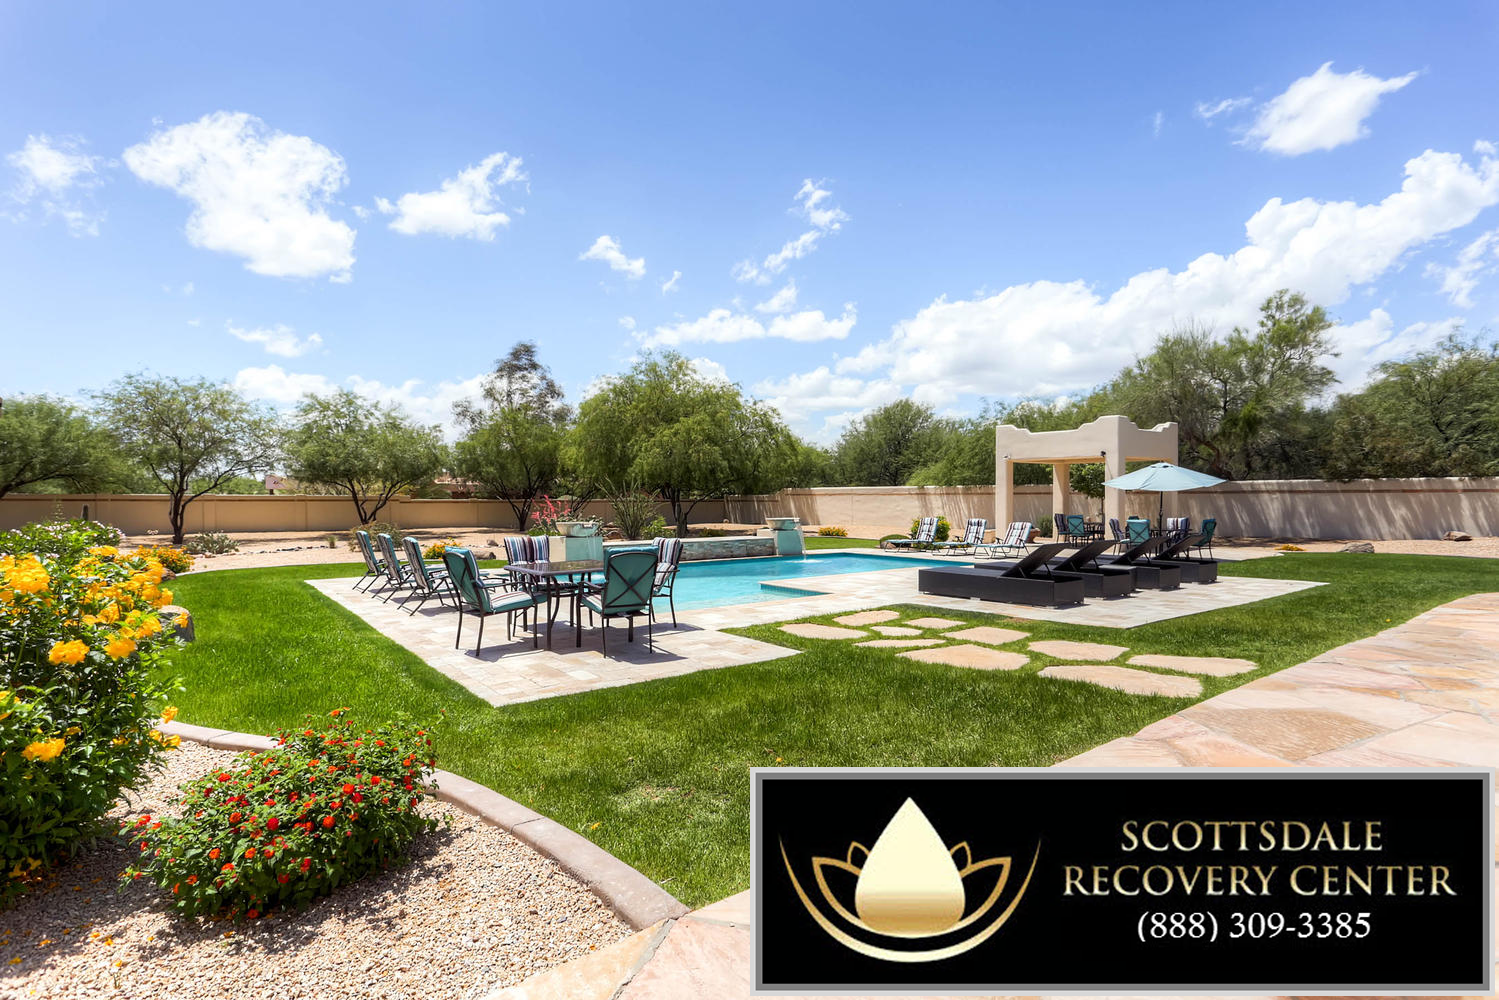 Scottsdale Recovery Center (Detox & Treatment) image 4